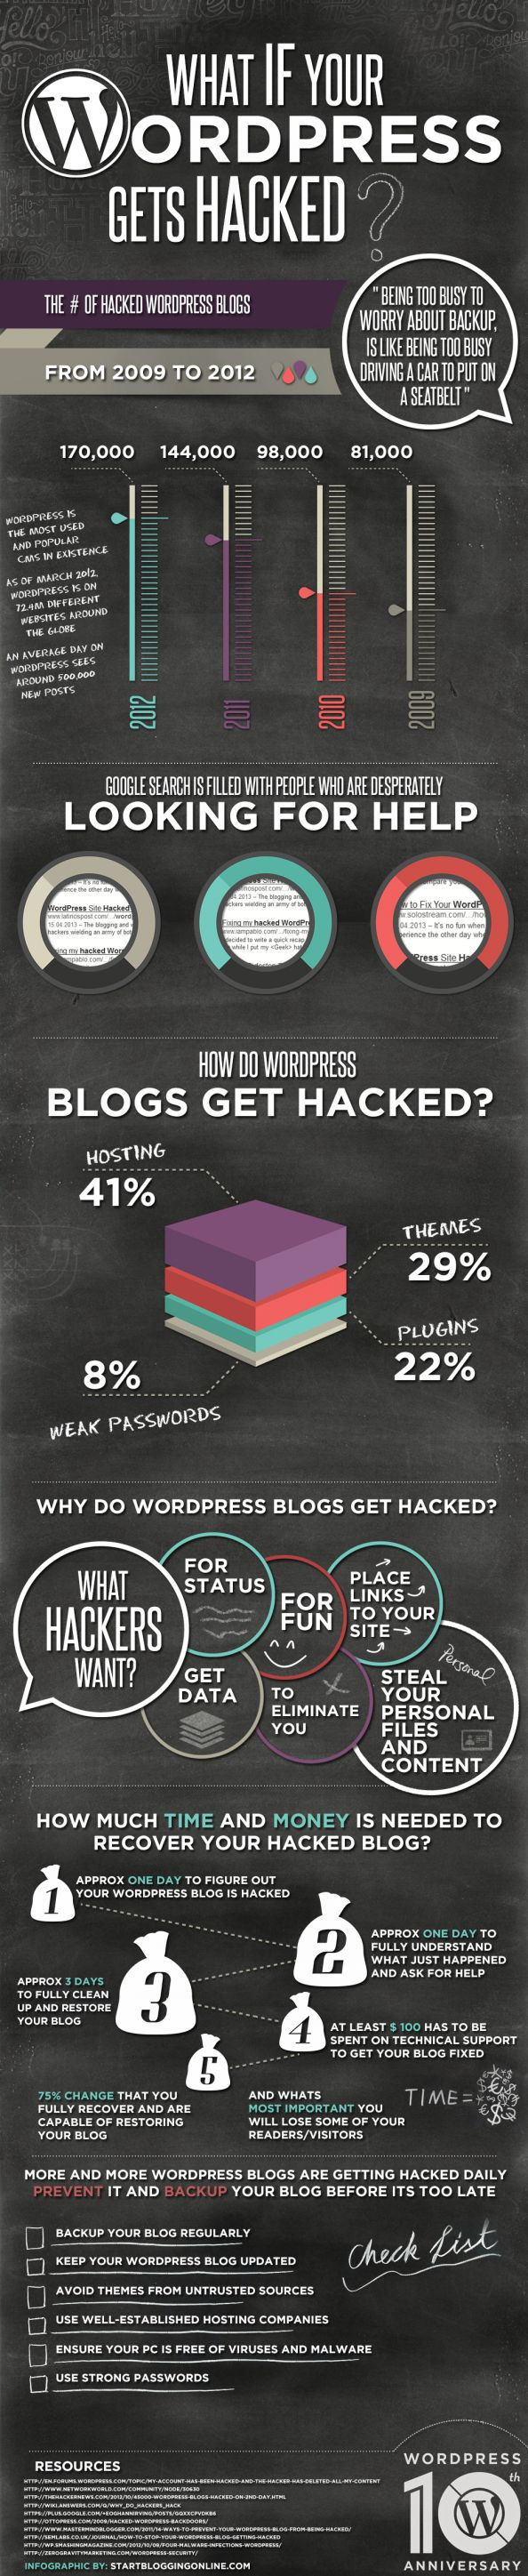 What If Wordpress Gets Hacked? #infographic